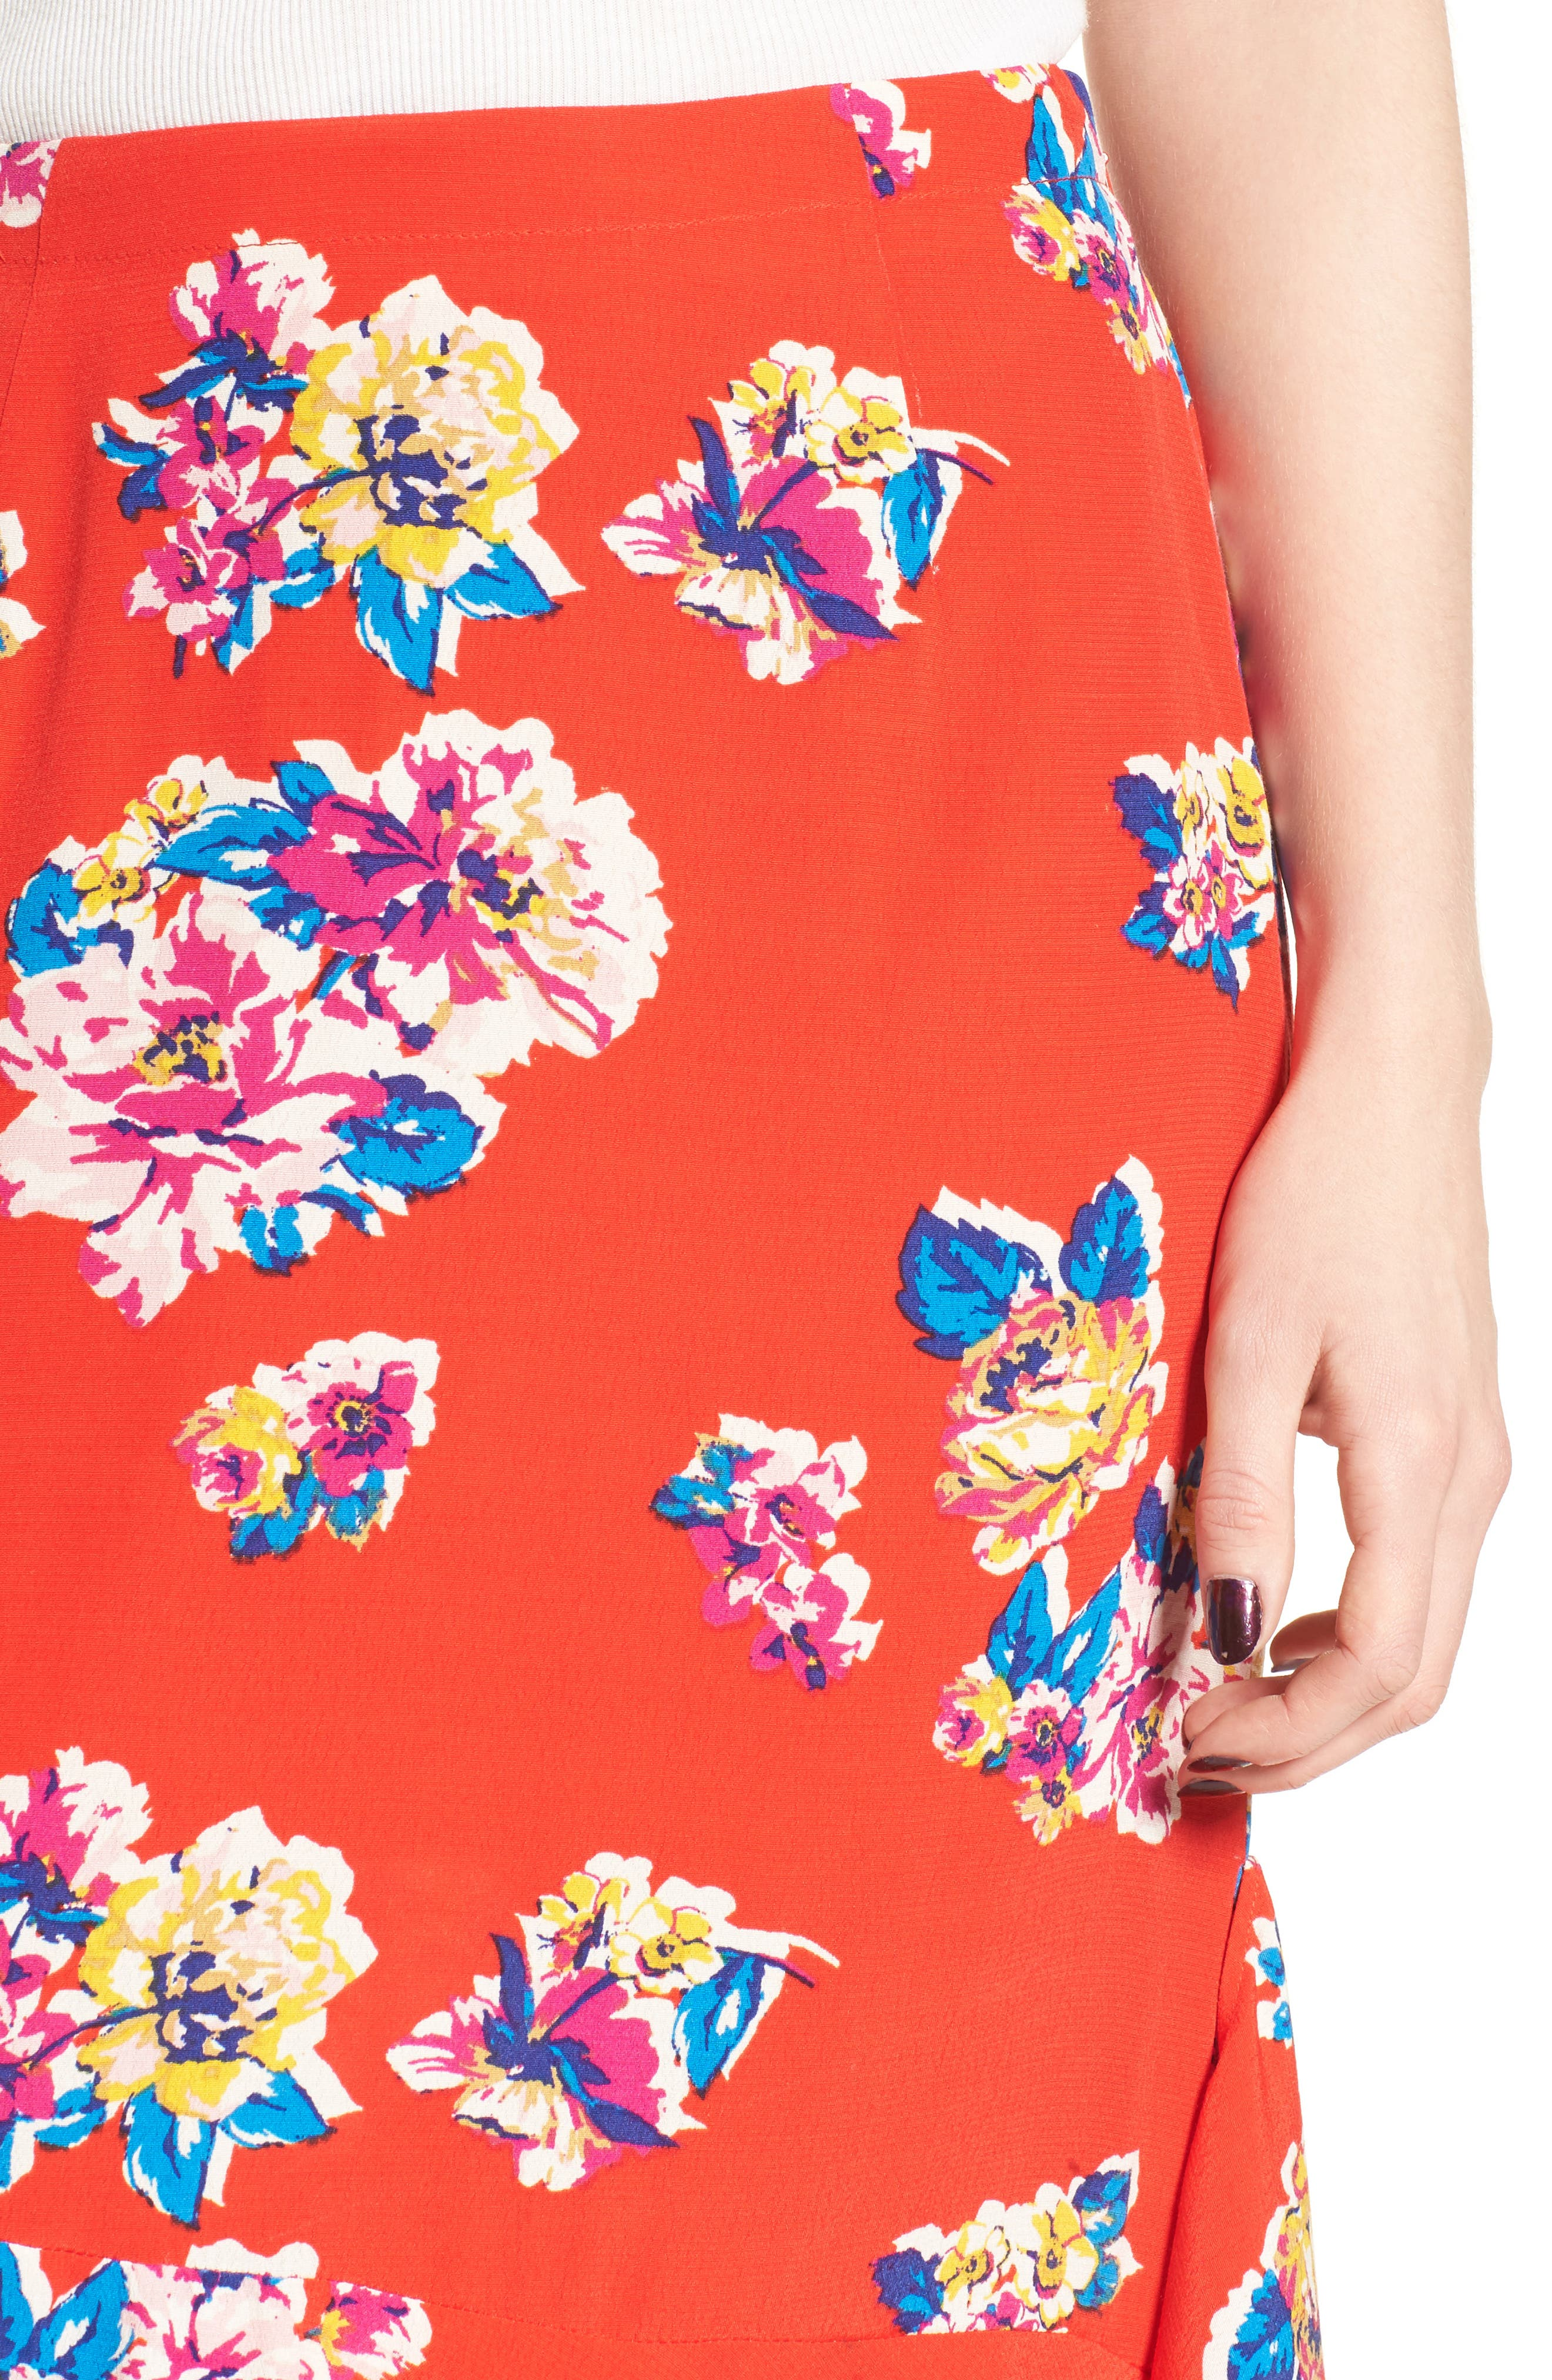 Floral Ruffle Hem Skirt,                             Alternate thumbnail 4, color,                             Red Field Bold Bloom